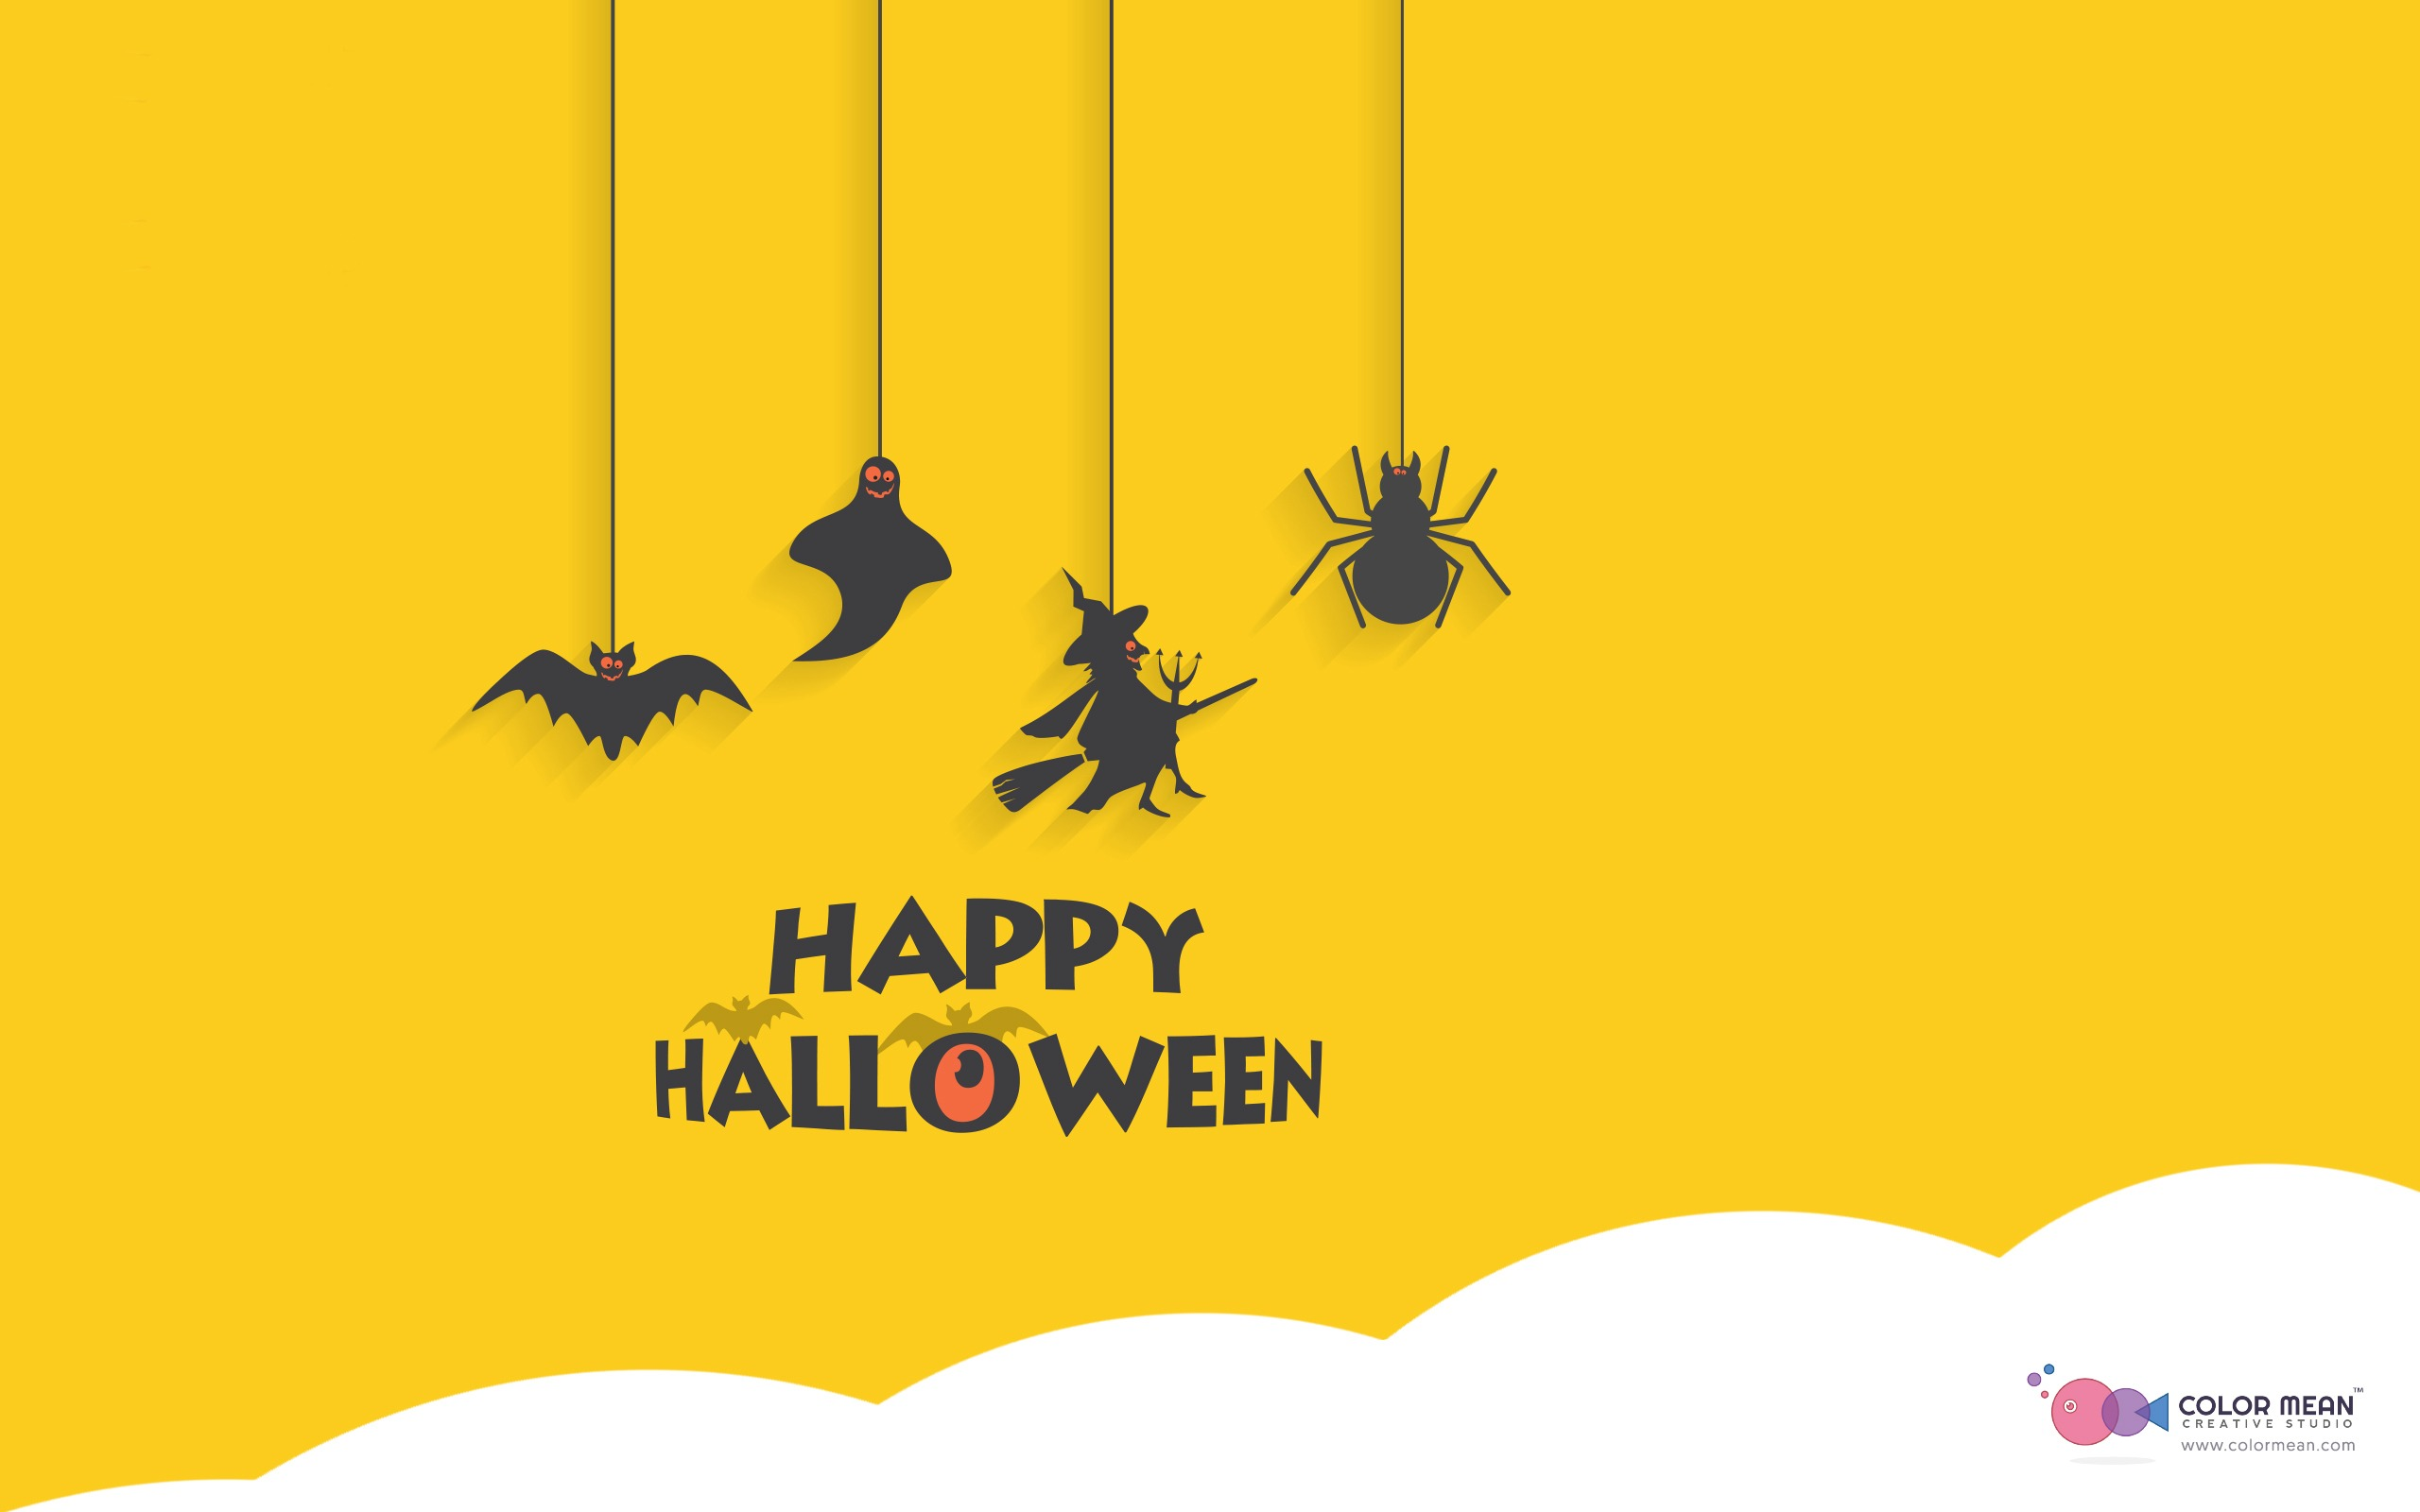 Happy Halloween Holiday HD Wallpaper 2560x1600